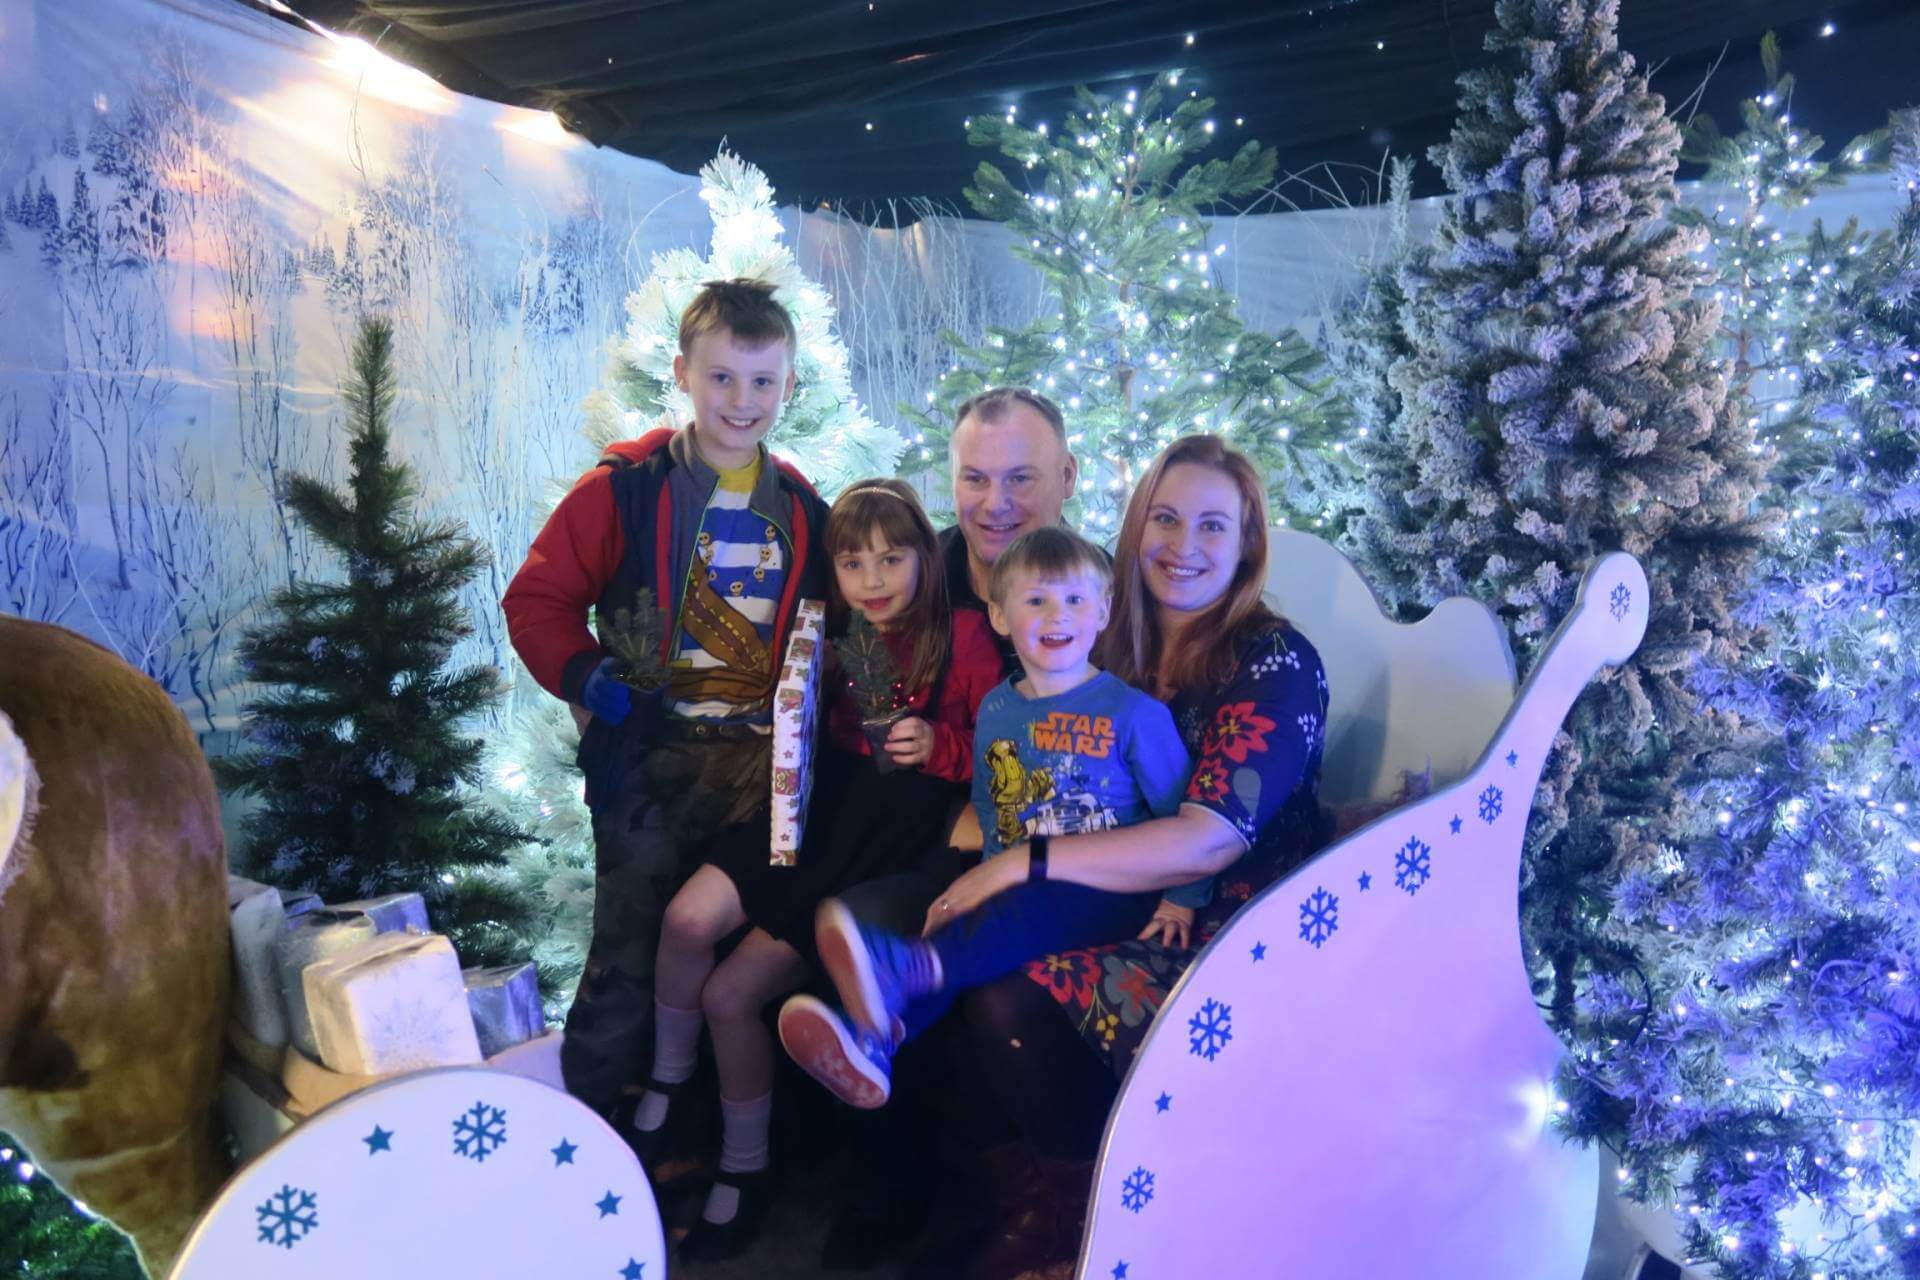 notcutts-maidstone-father-christmas-santas-grotto-experience-review-what-you-get-winter-wonderland-christmas